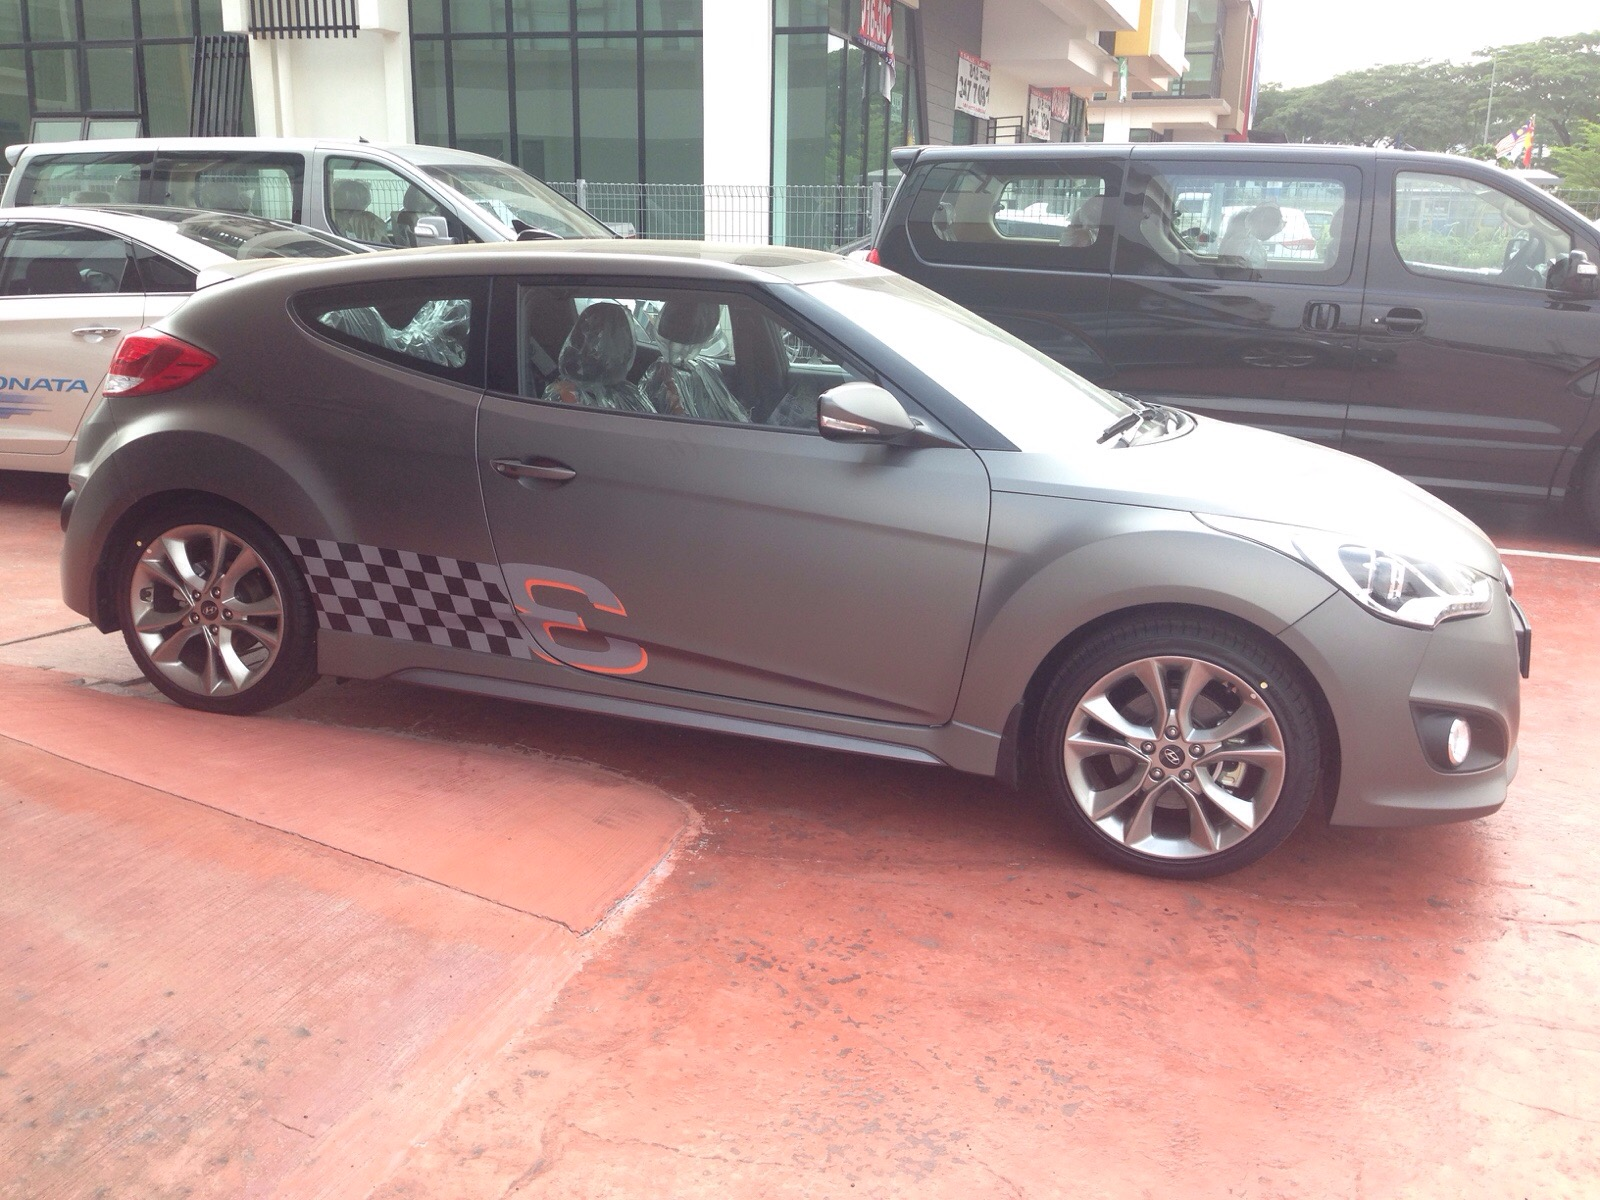 photos hatchback spec reviews base r interior features veloster price turbo hyundai coupe